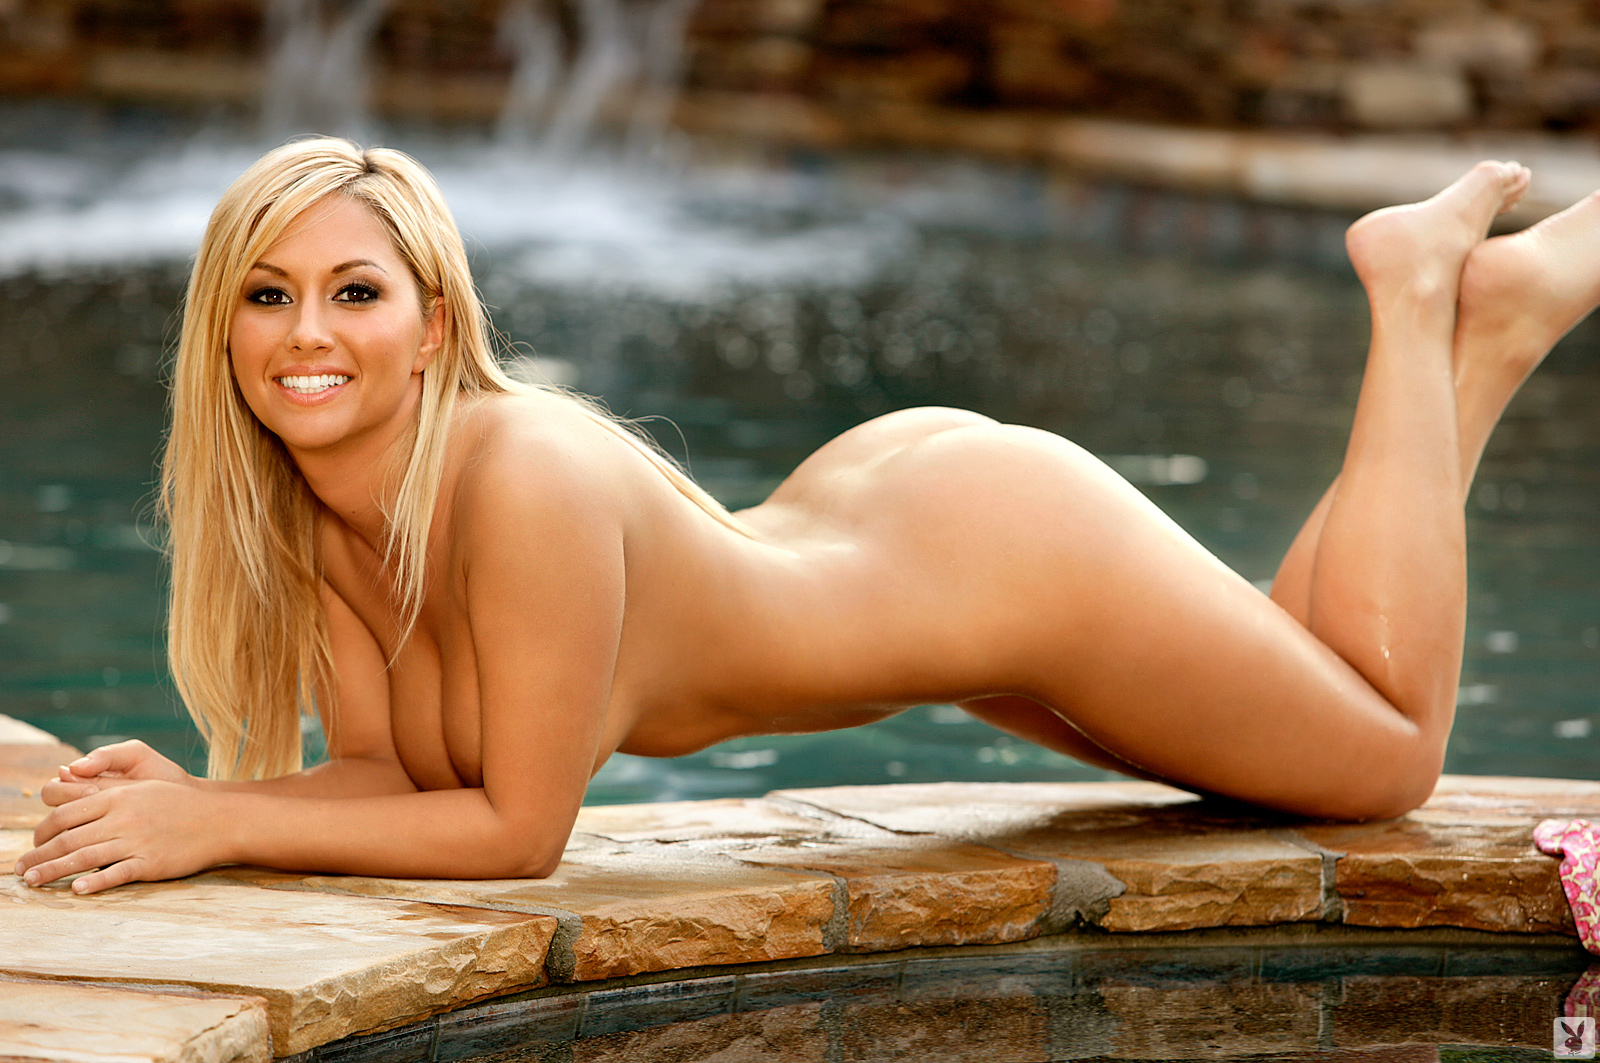 Amy Leigh Andrews - Free pics, videos biography